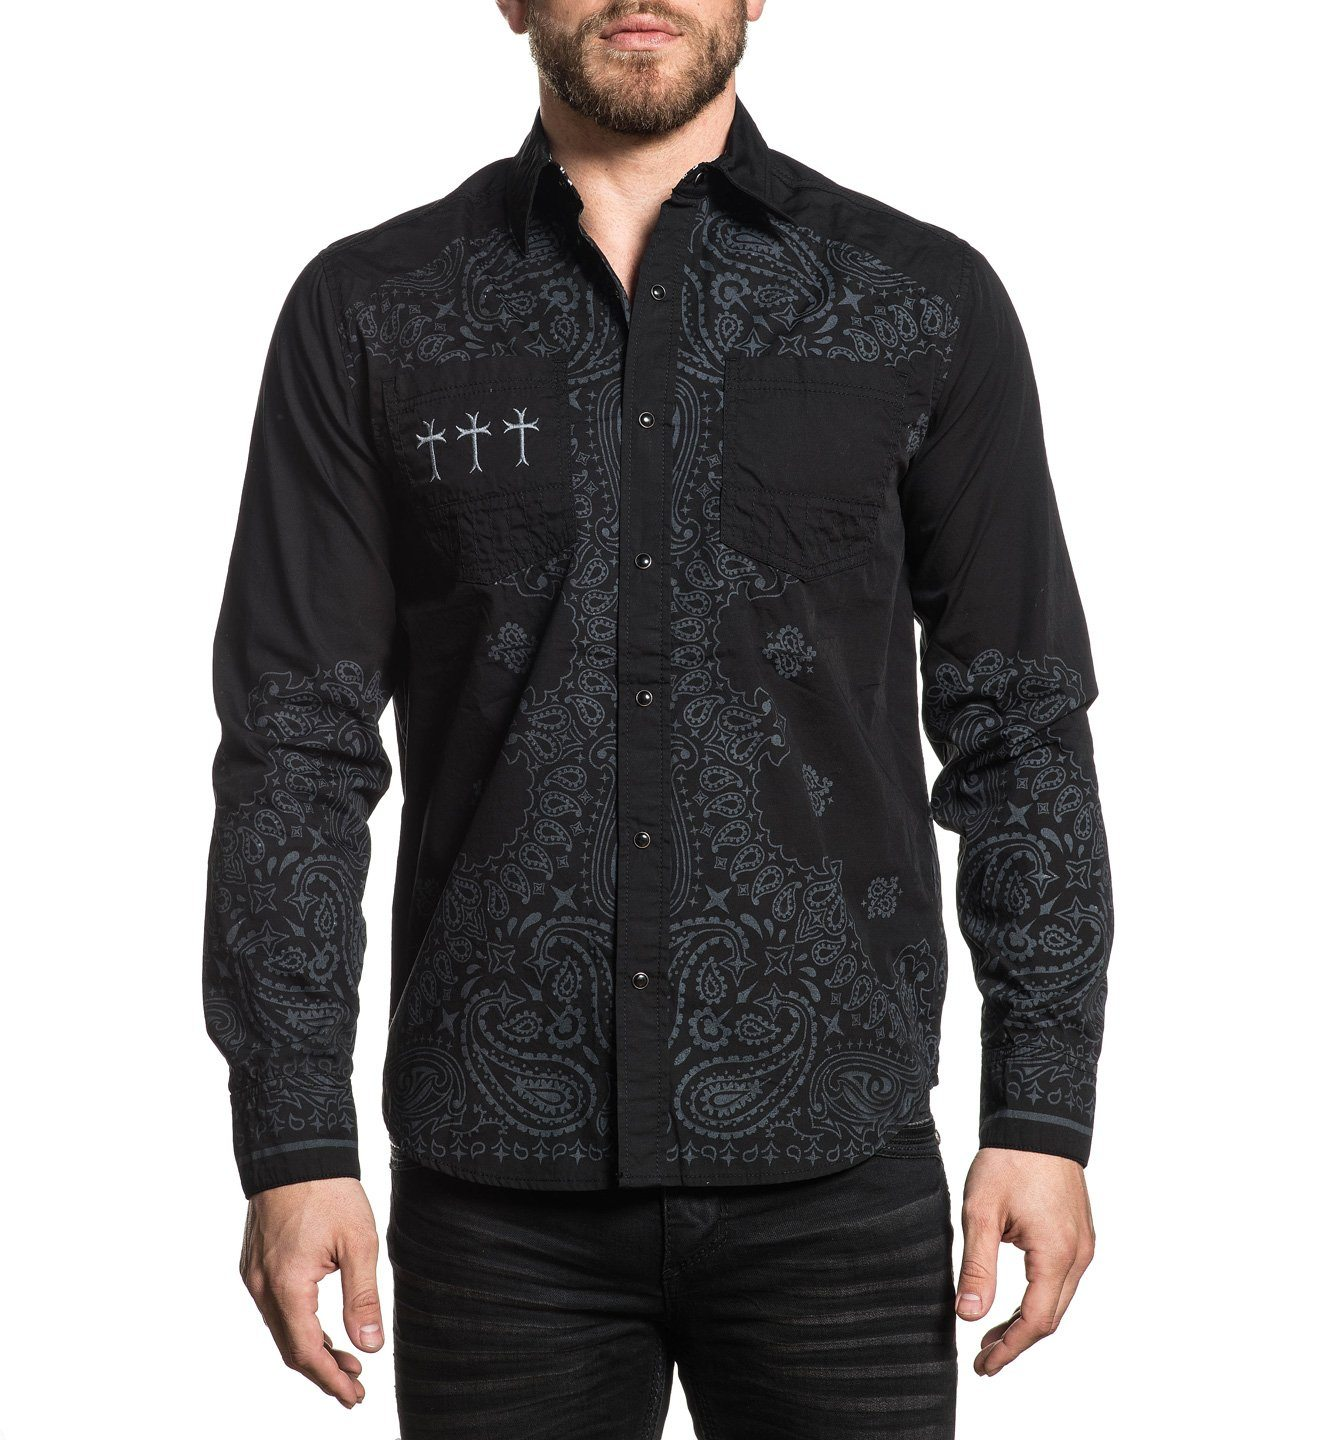 Crucial - Mens Button Down Tops - Affliction Clothing